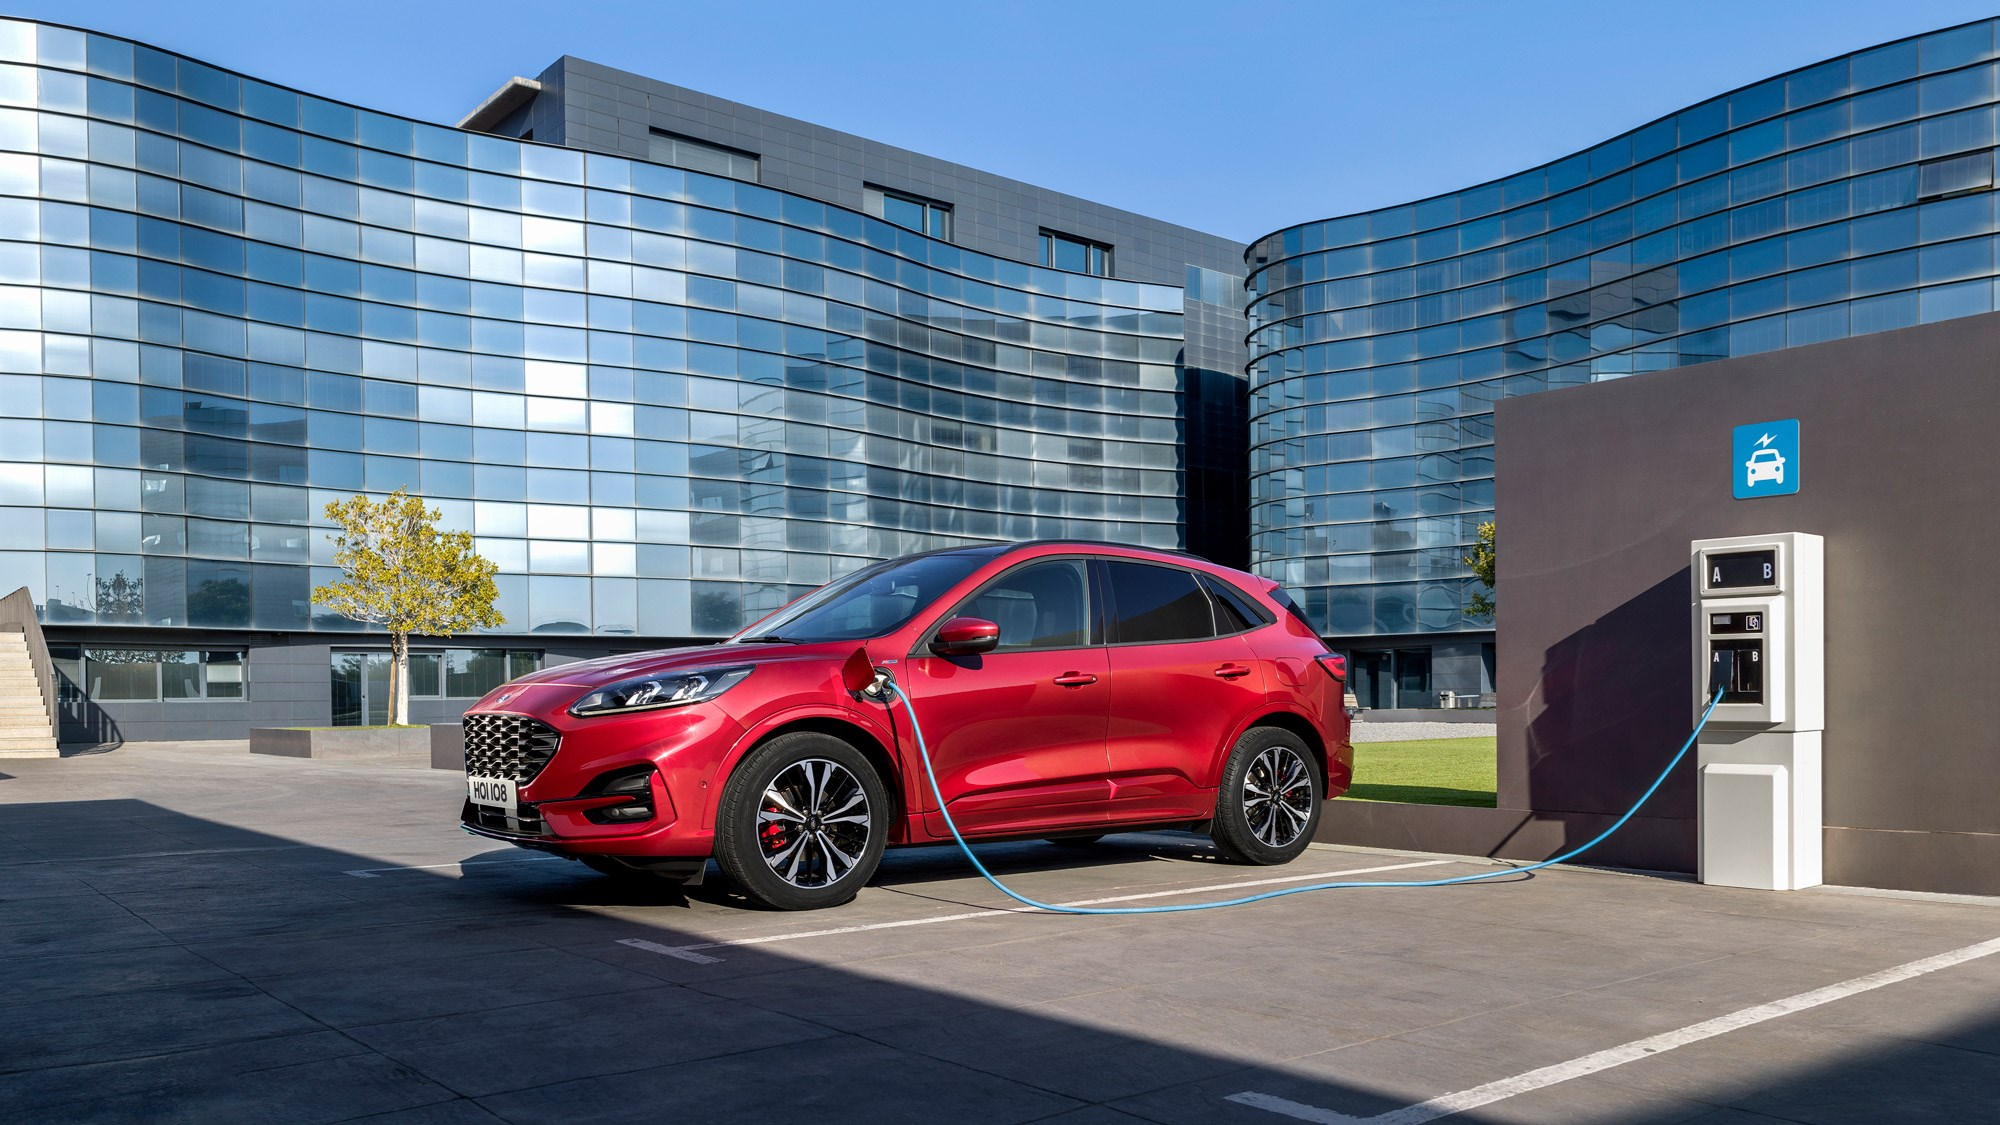 Ford S Electric Push From Famine To Feast In A Single Day